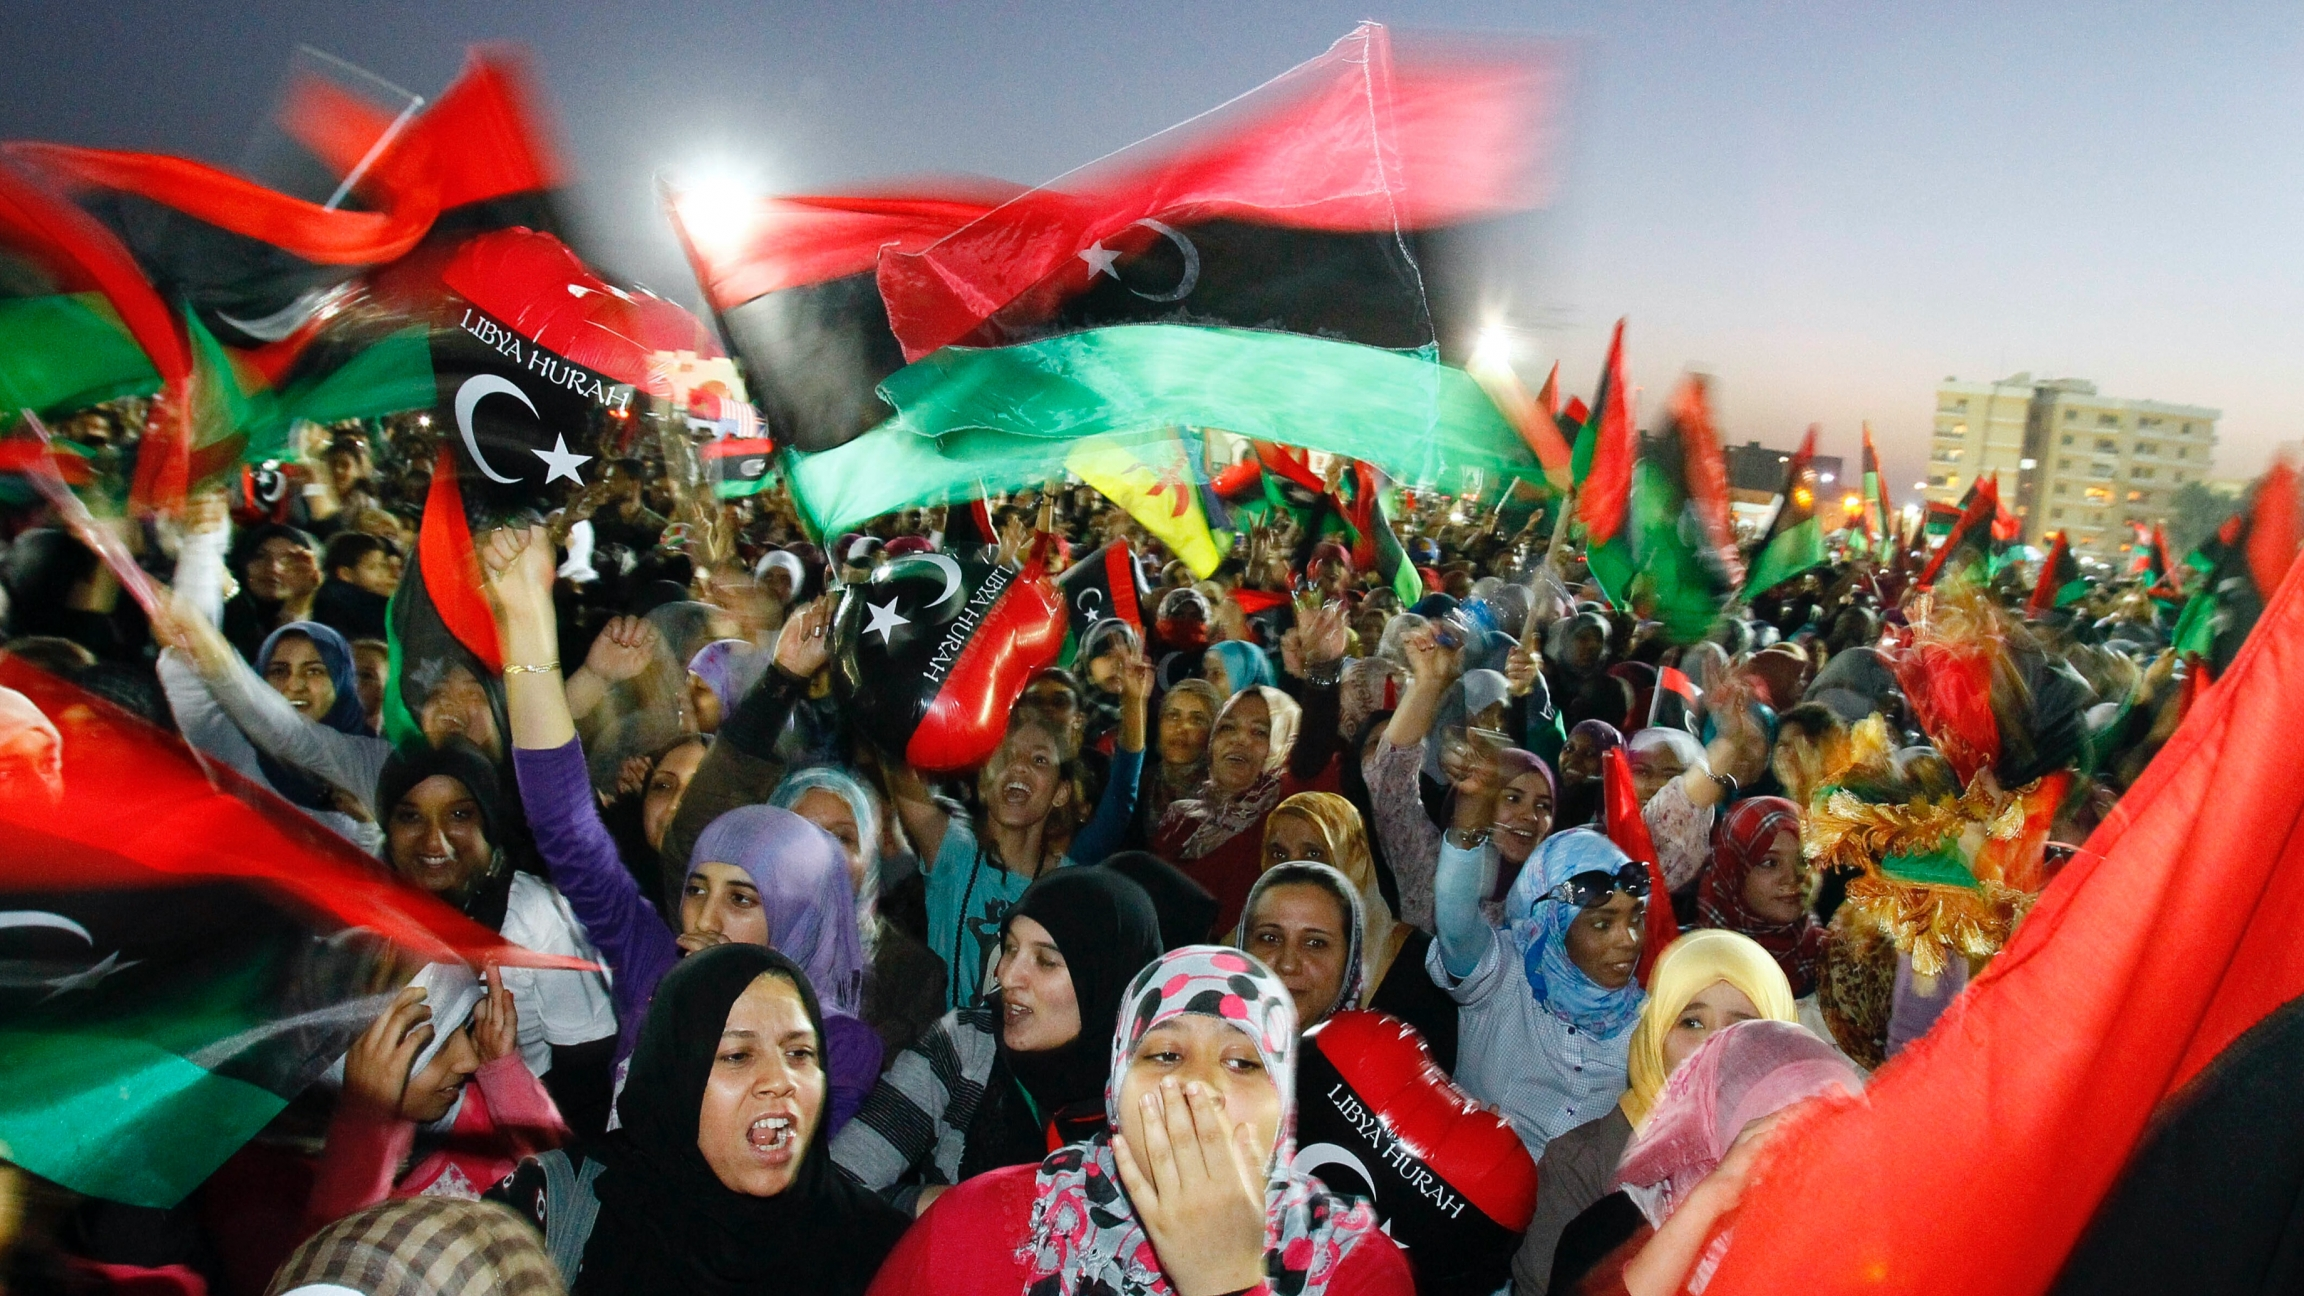 A crowd of people celebrate with flashes of red, black and green flags waving in the air.